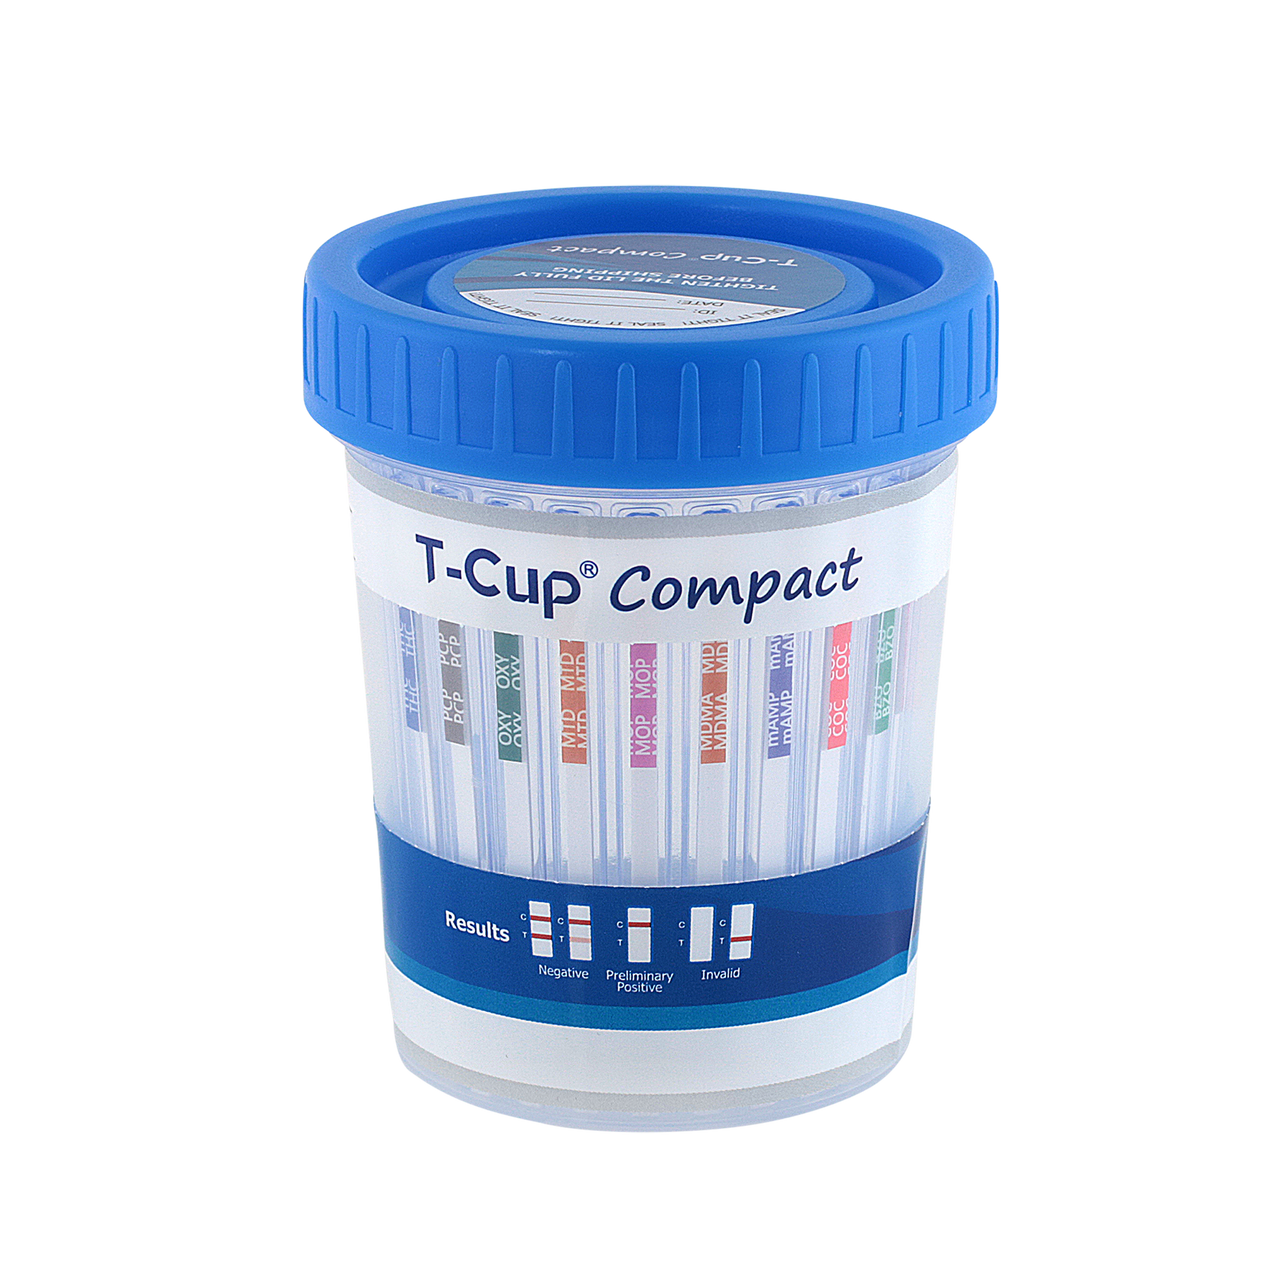 12 Panel T-Cup Compact CLIA Waived Instant Drug Test Cup 25/Box